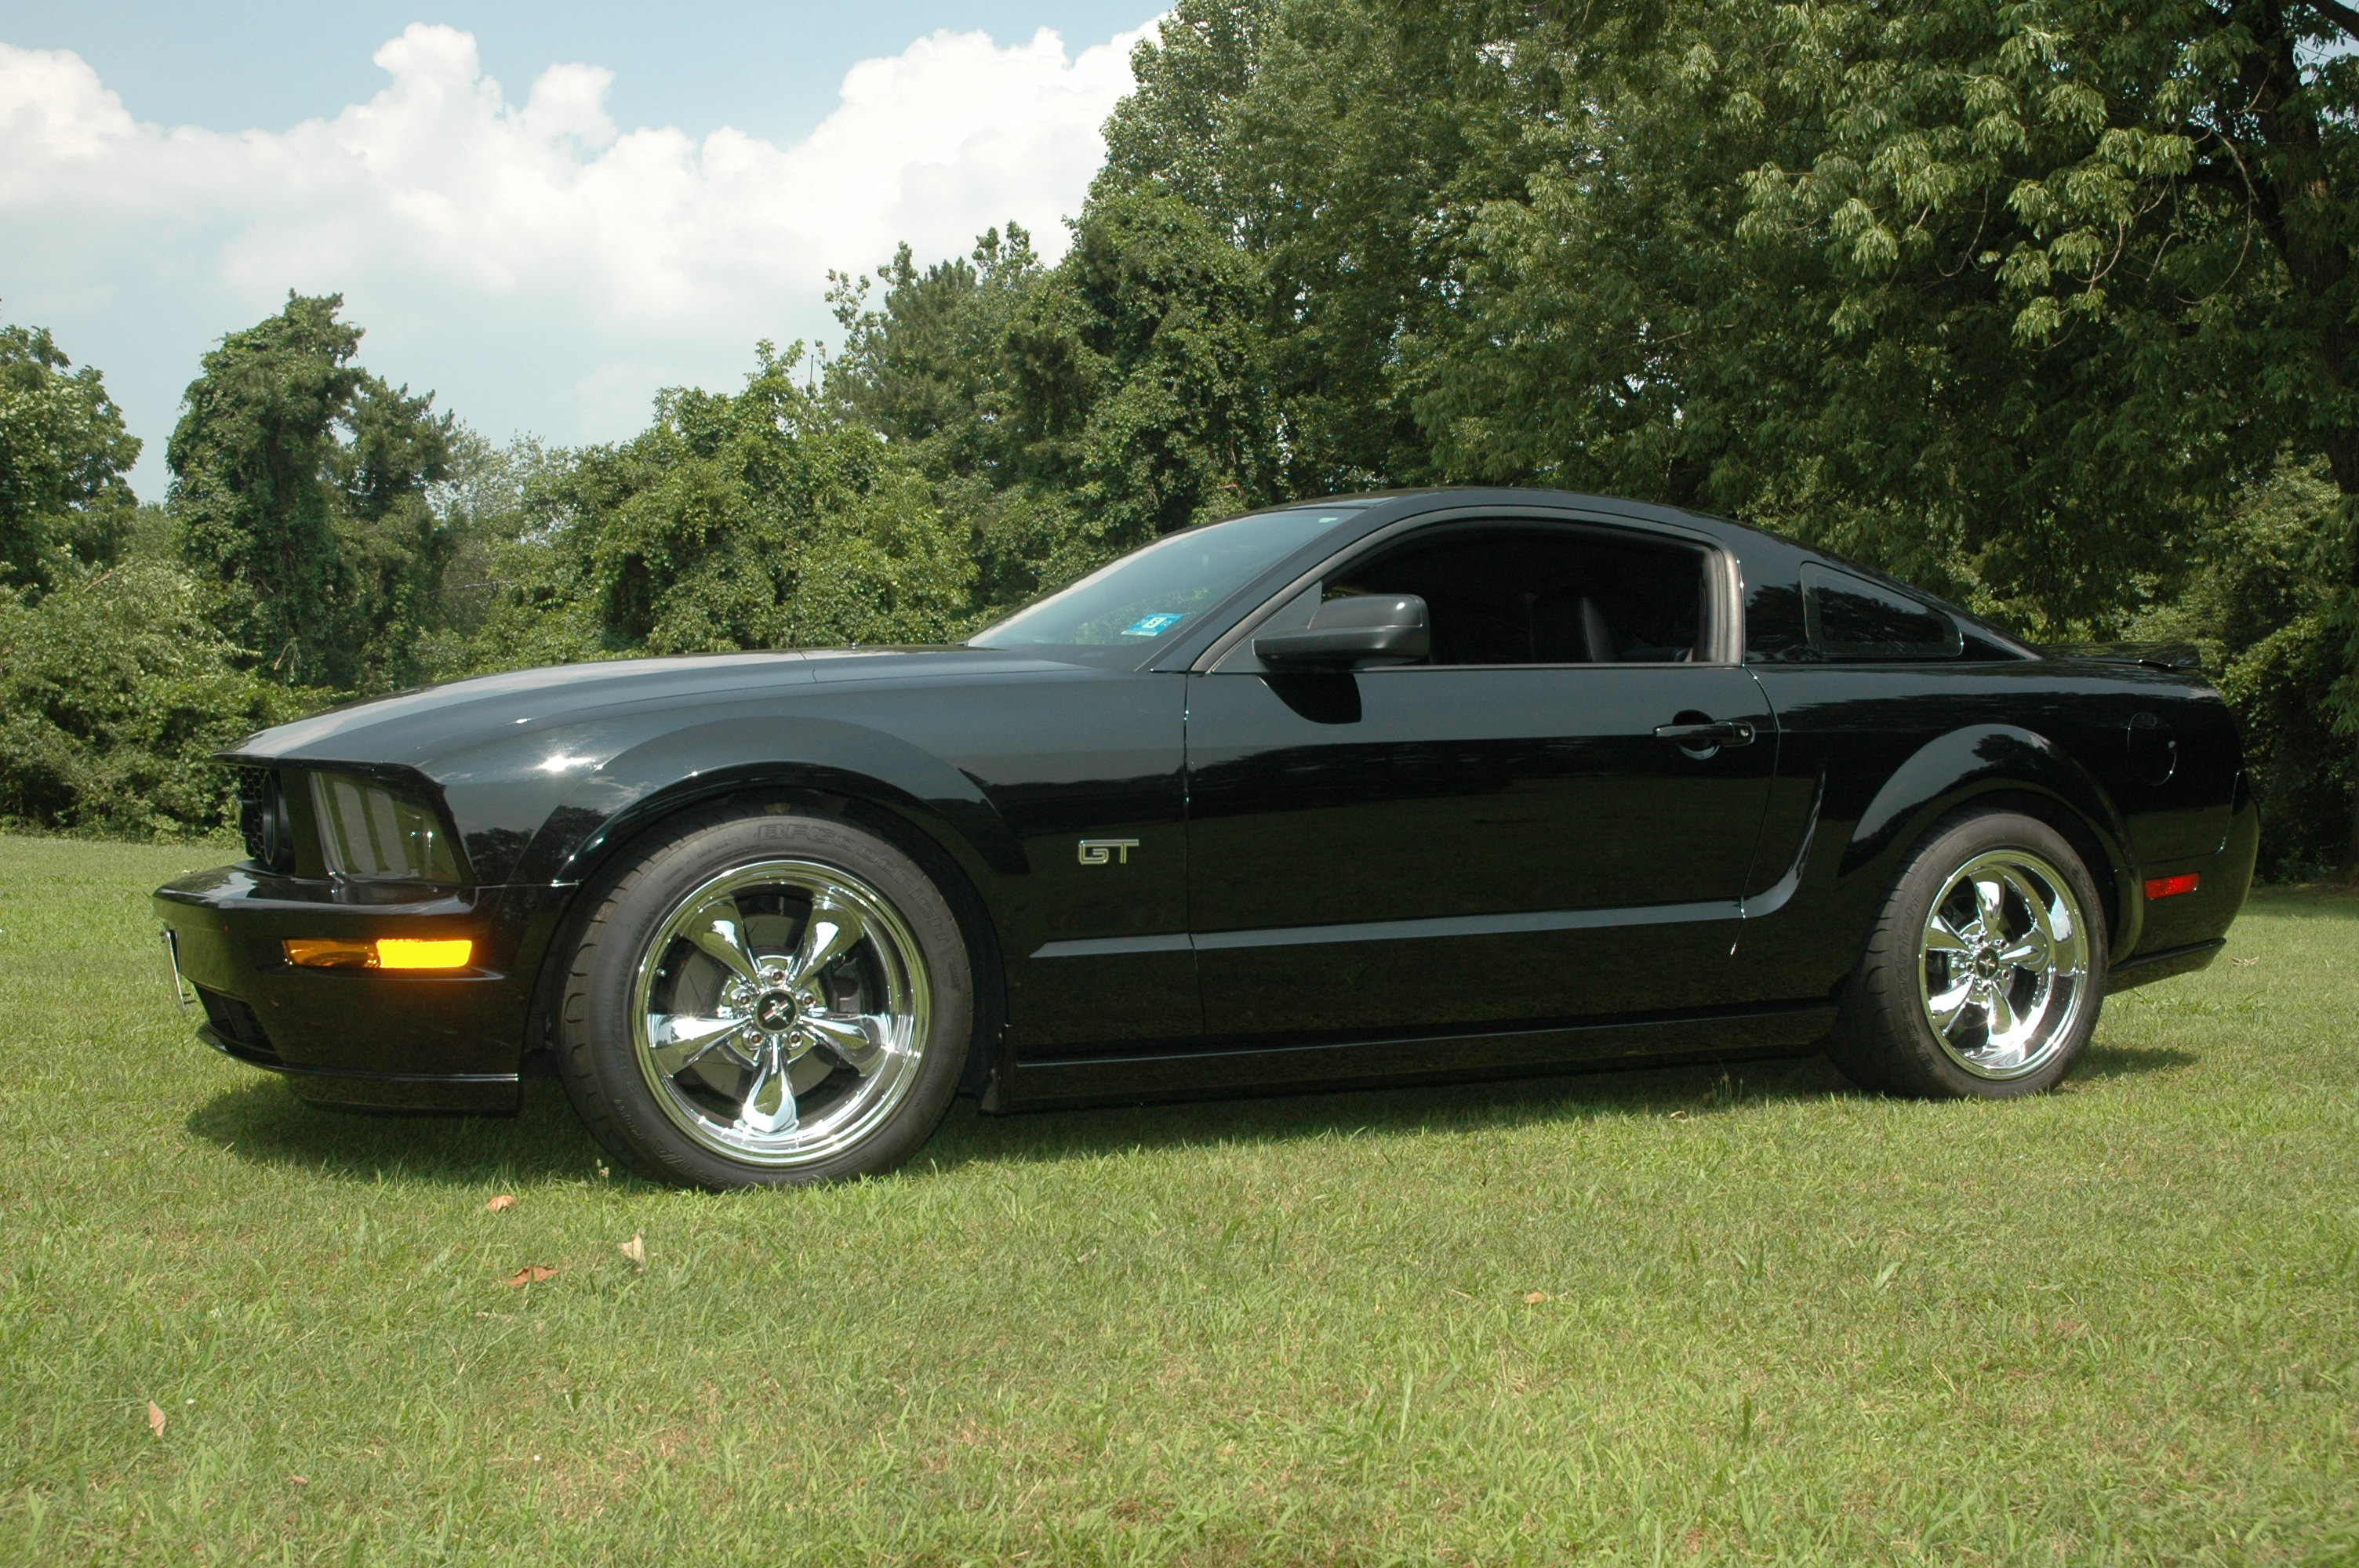 2006 ford mustang gt coupe automatic 1 4 mile trap speeds 0 60